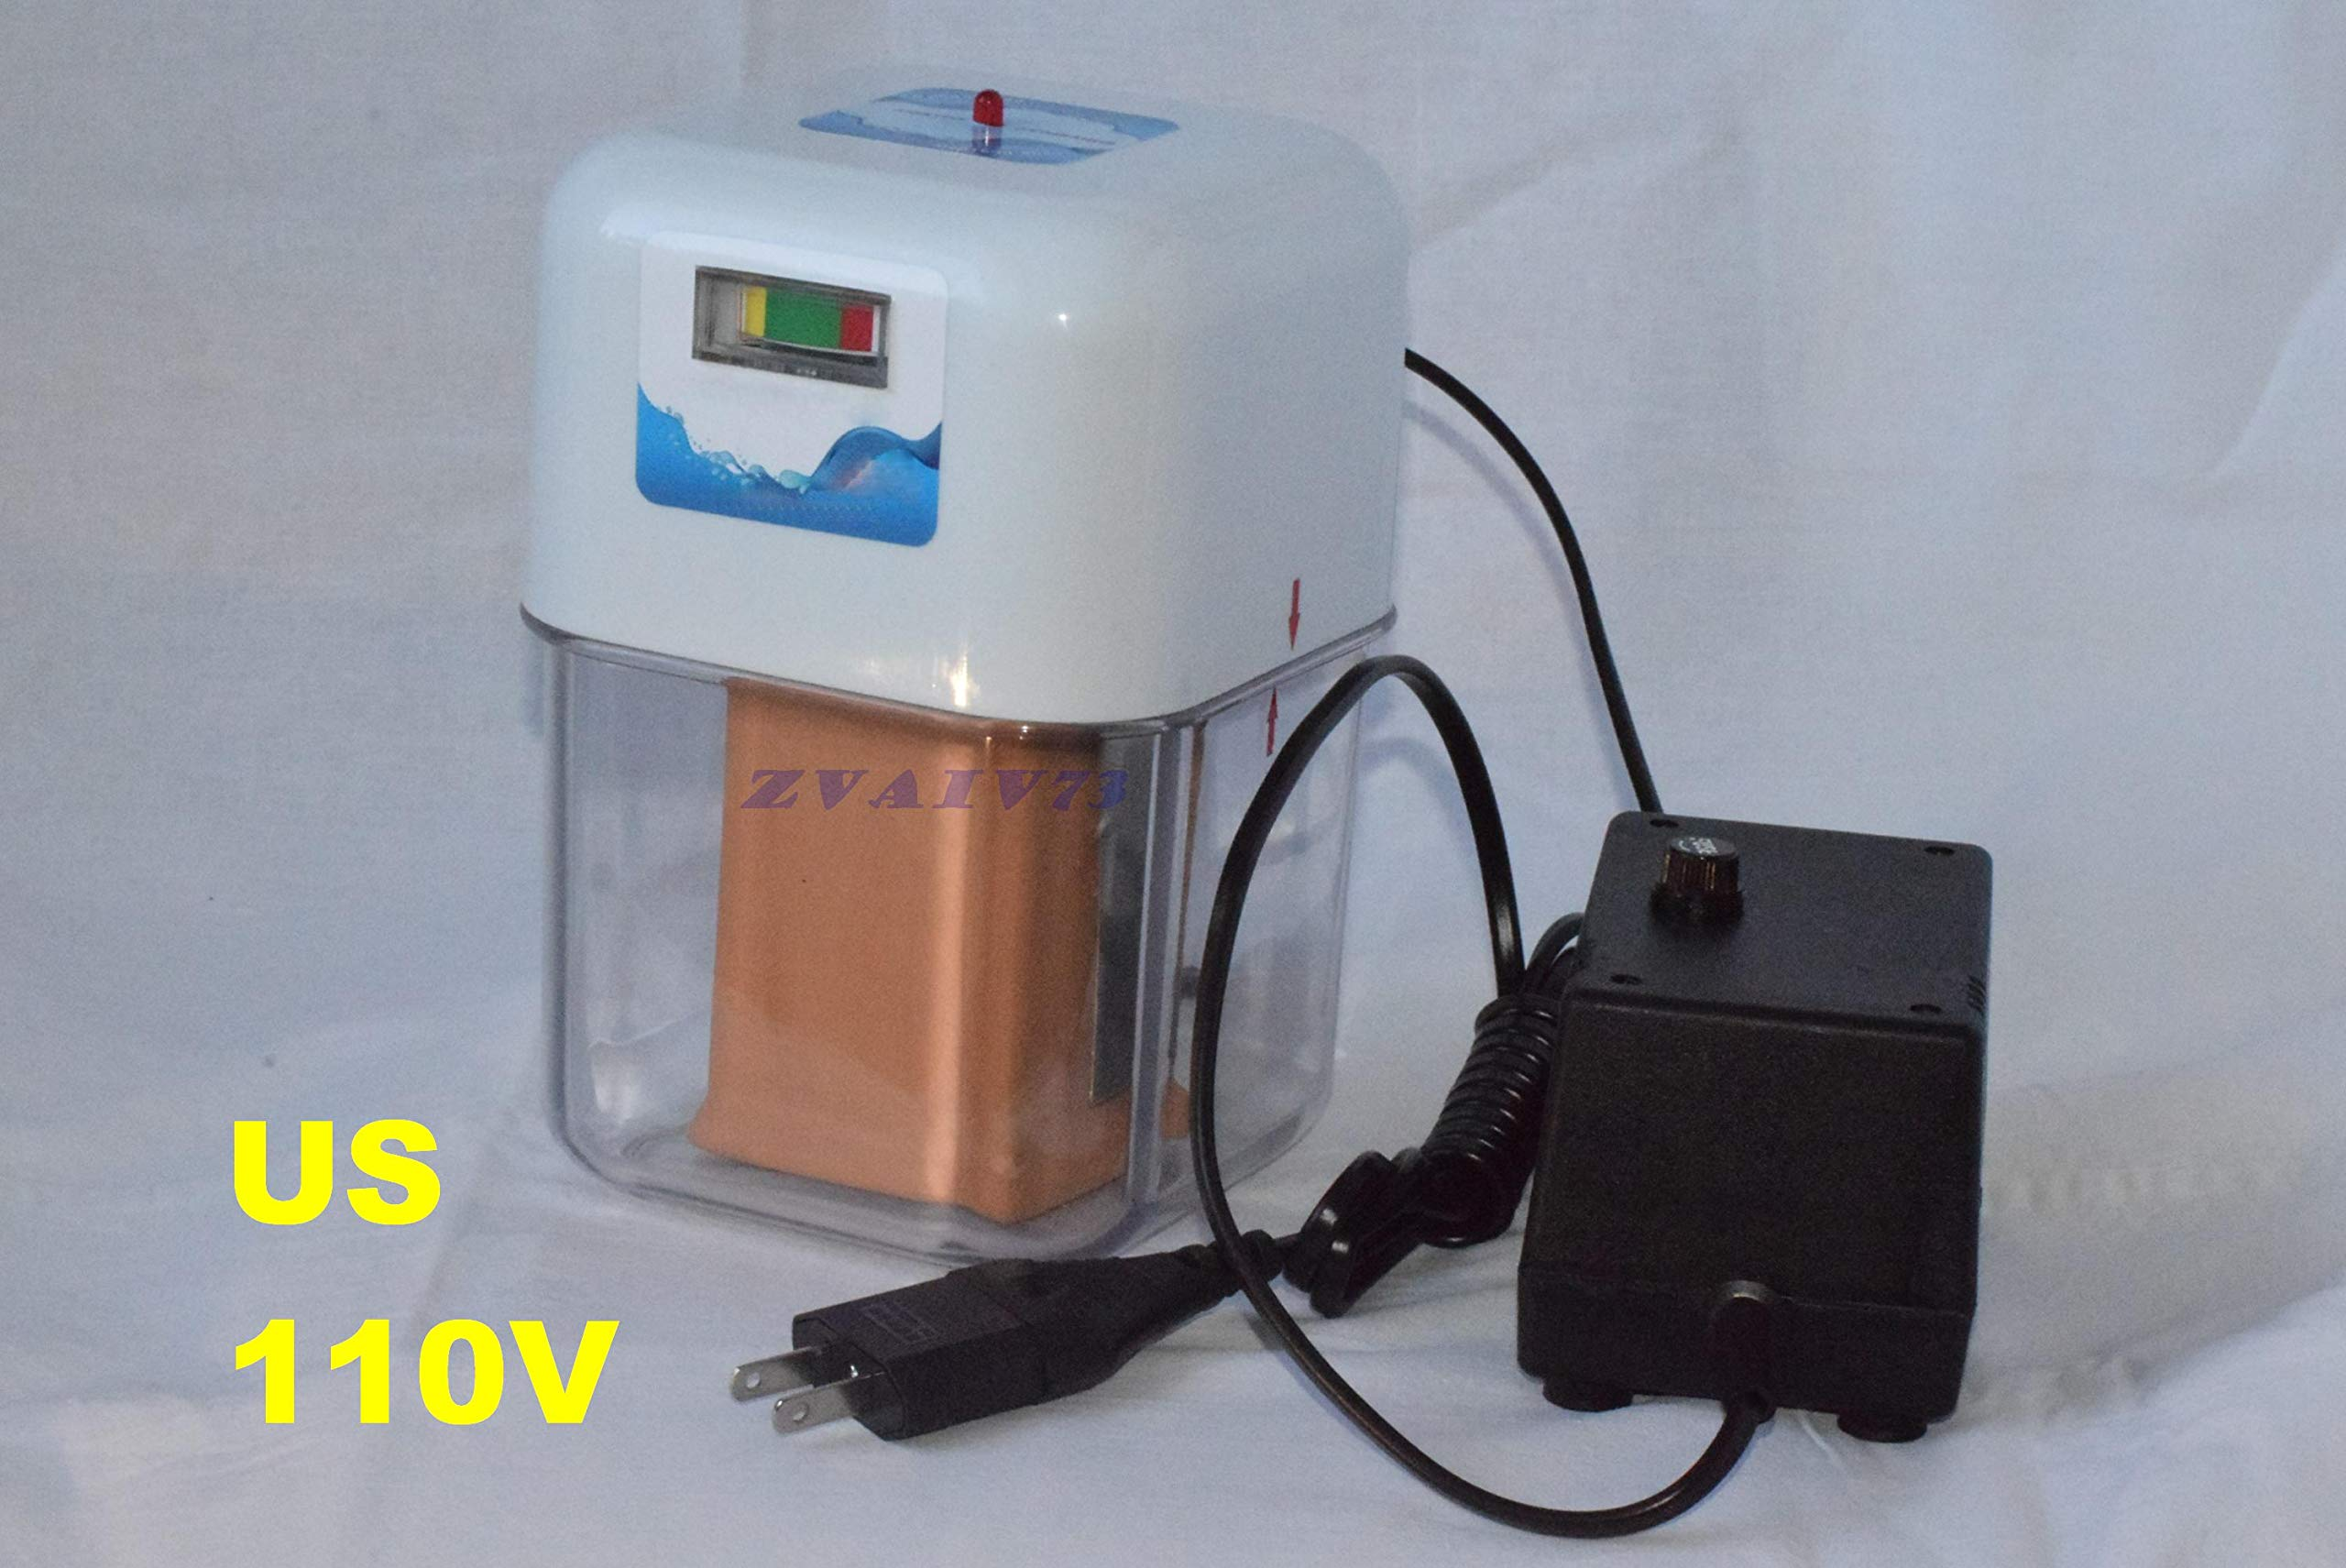 New 110V US Small Water ionizer activator Living & Dead Water, Titanium Electrode, Acid & alcaline Water by AstroniMed